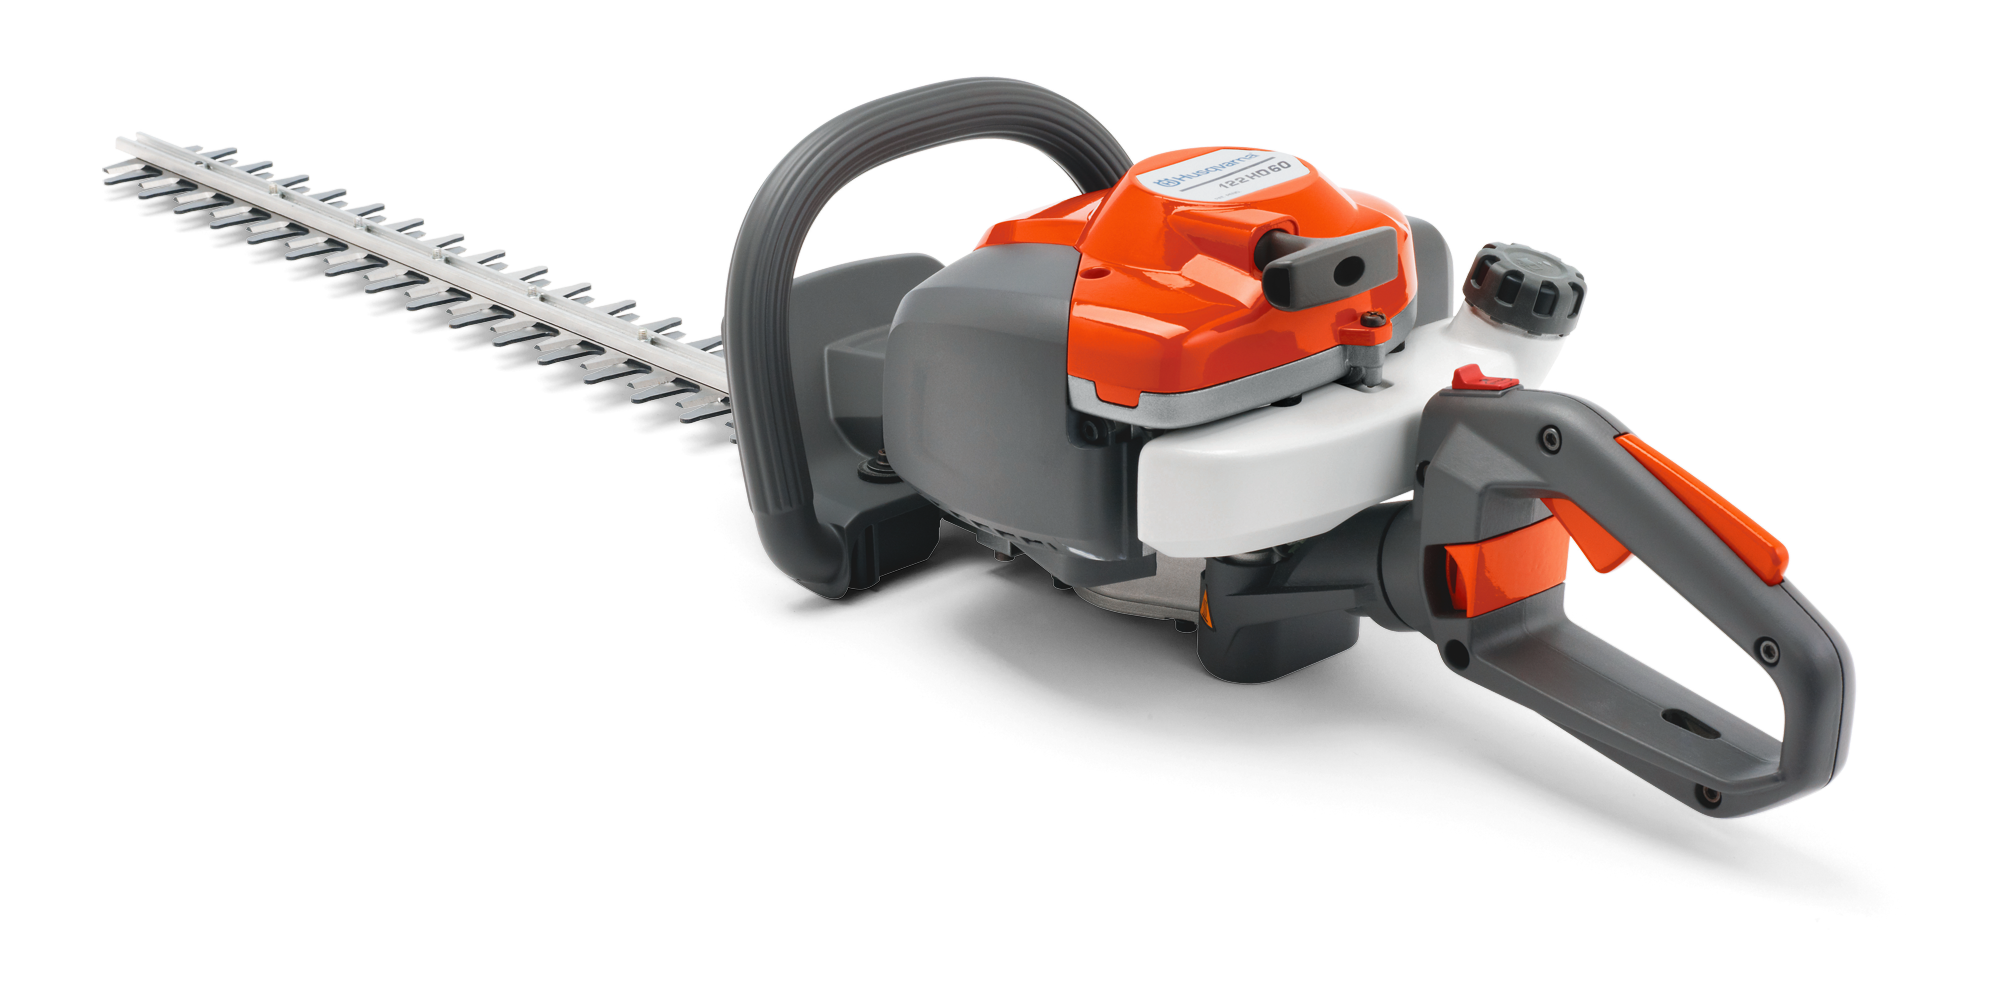 Image for 122HD60 Gas Hedge Trimmer                                                                                                        from HusqvarnaB2C